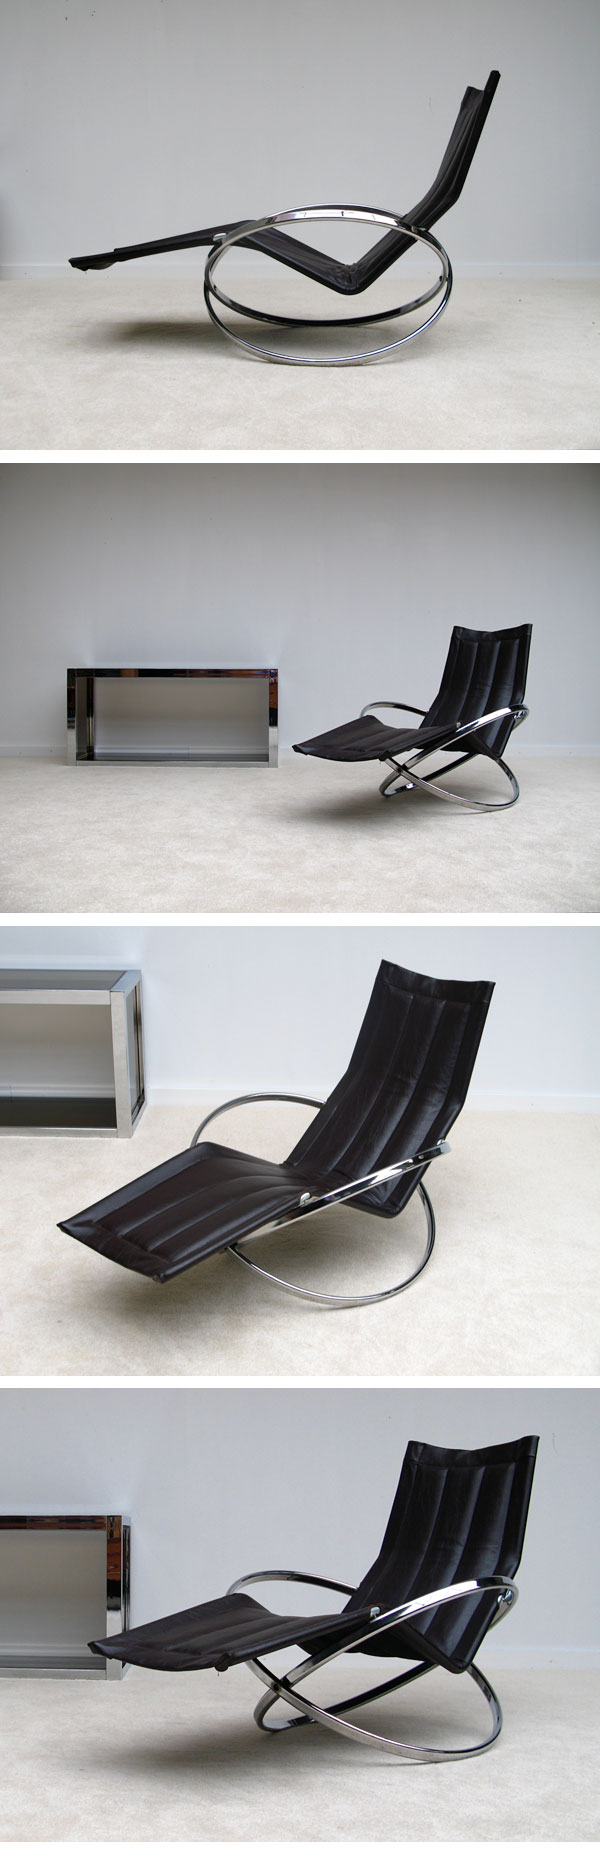 1970, JET STAR, rocker-relaxer ,chair, Roger Lecal